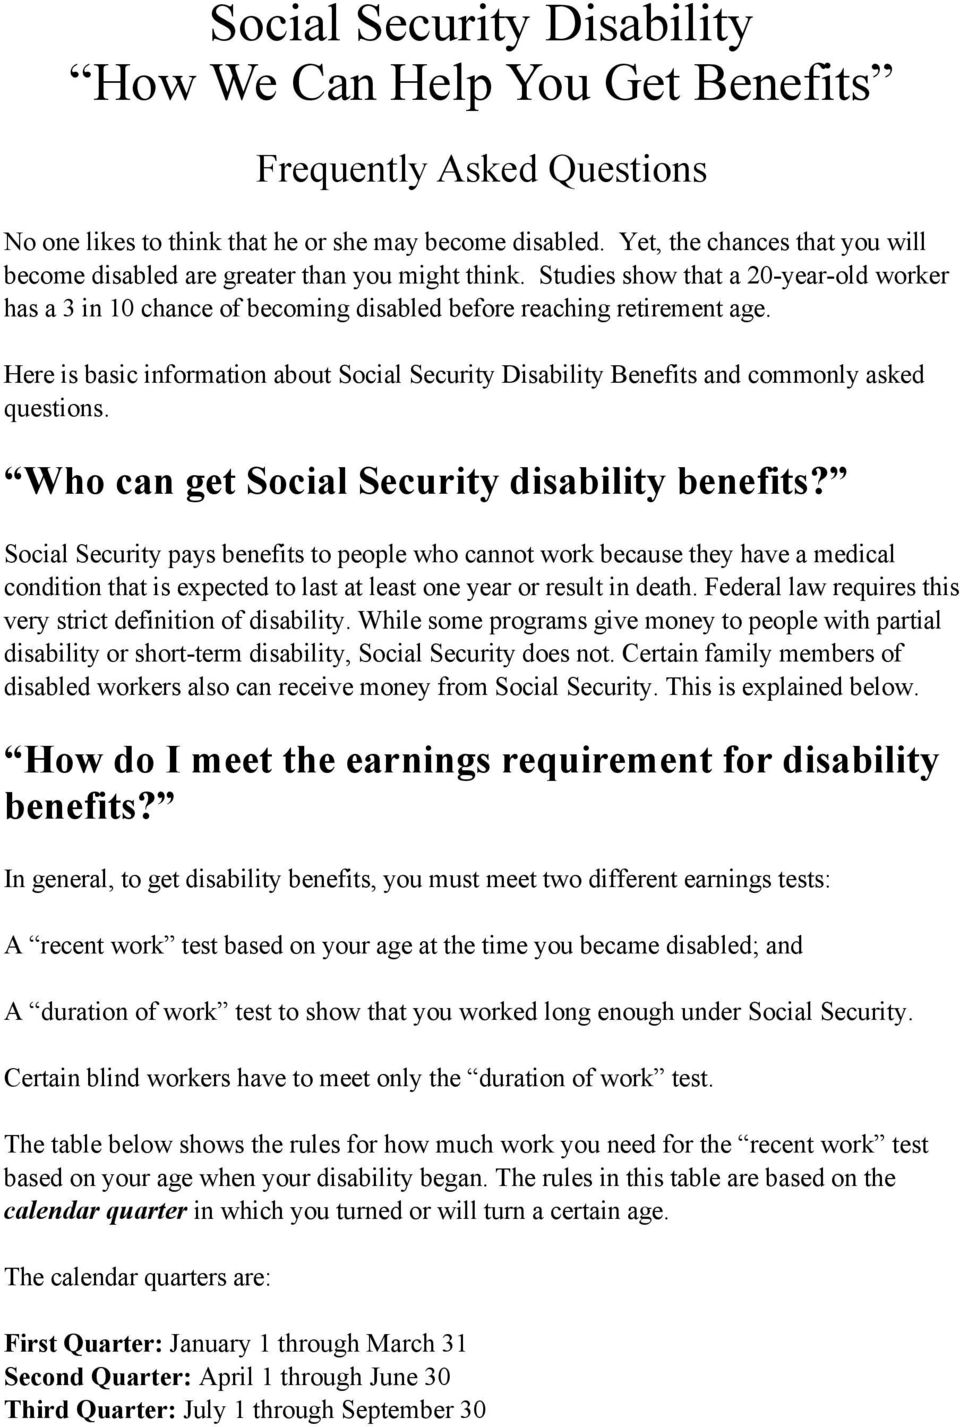 Here is basic information about Social Security Disability Benefits and commonly asked questions. Who can get Social Security disability benefits?